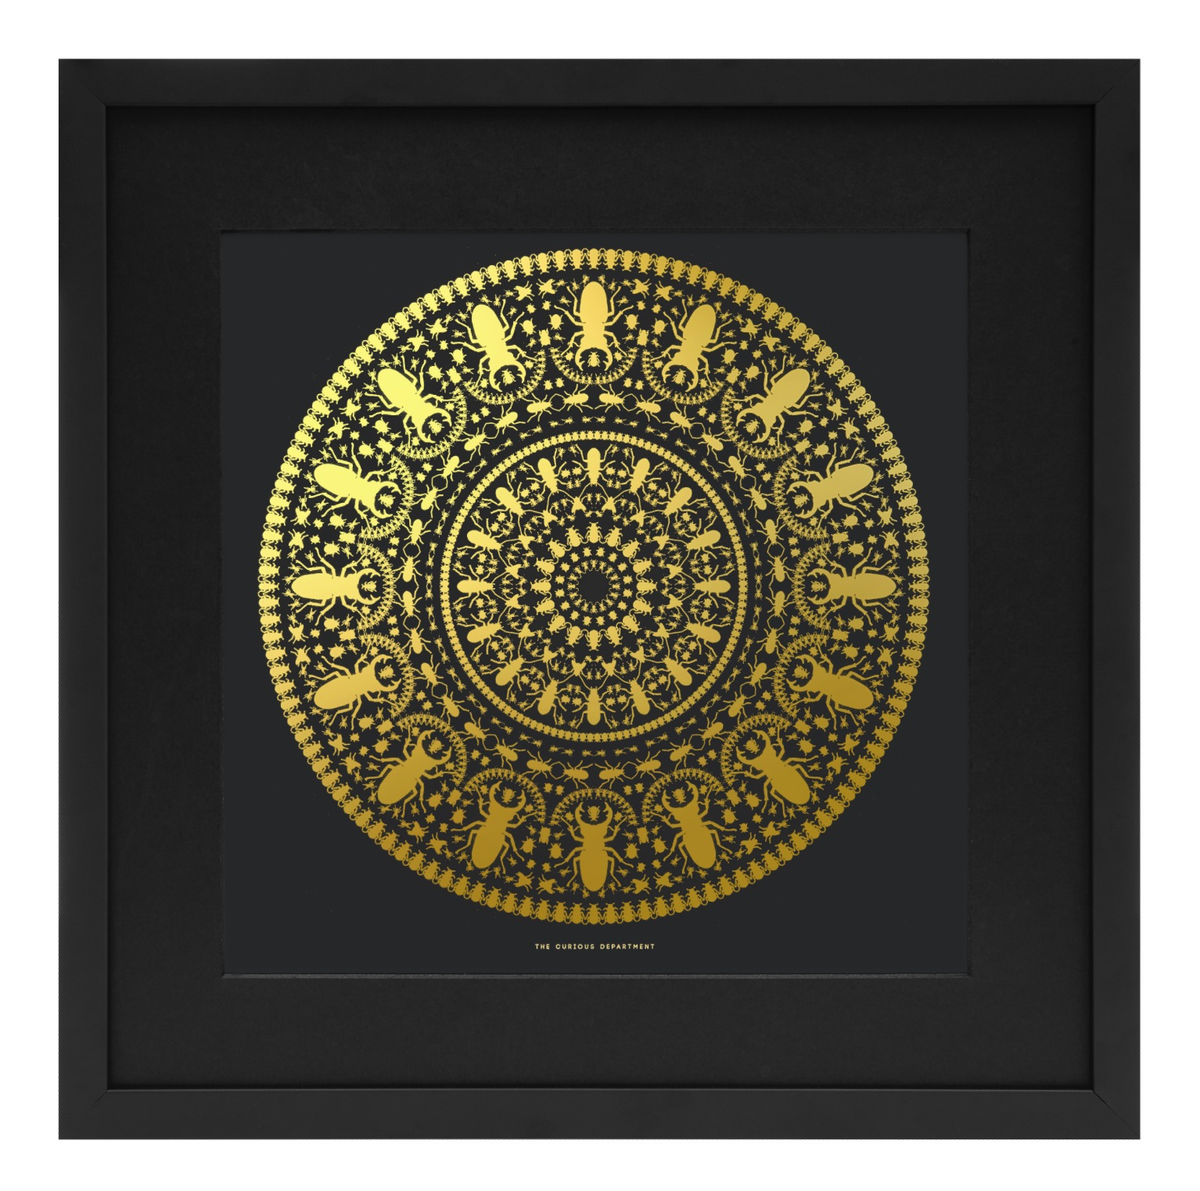 Image of insect mandala limited edition print